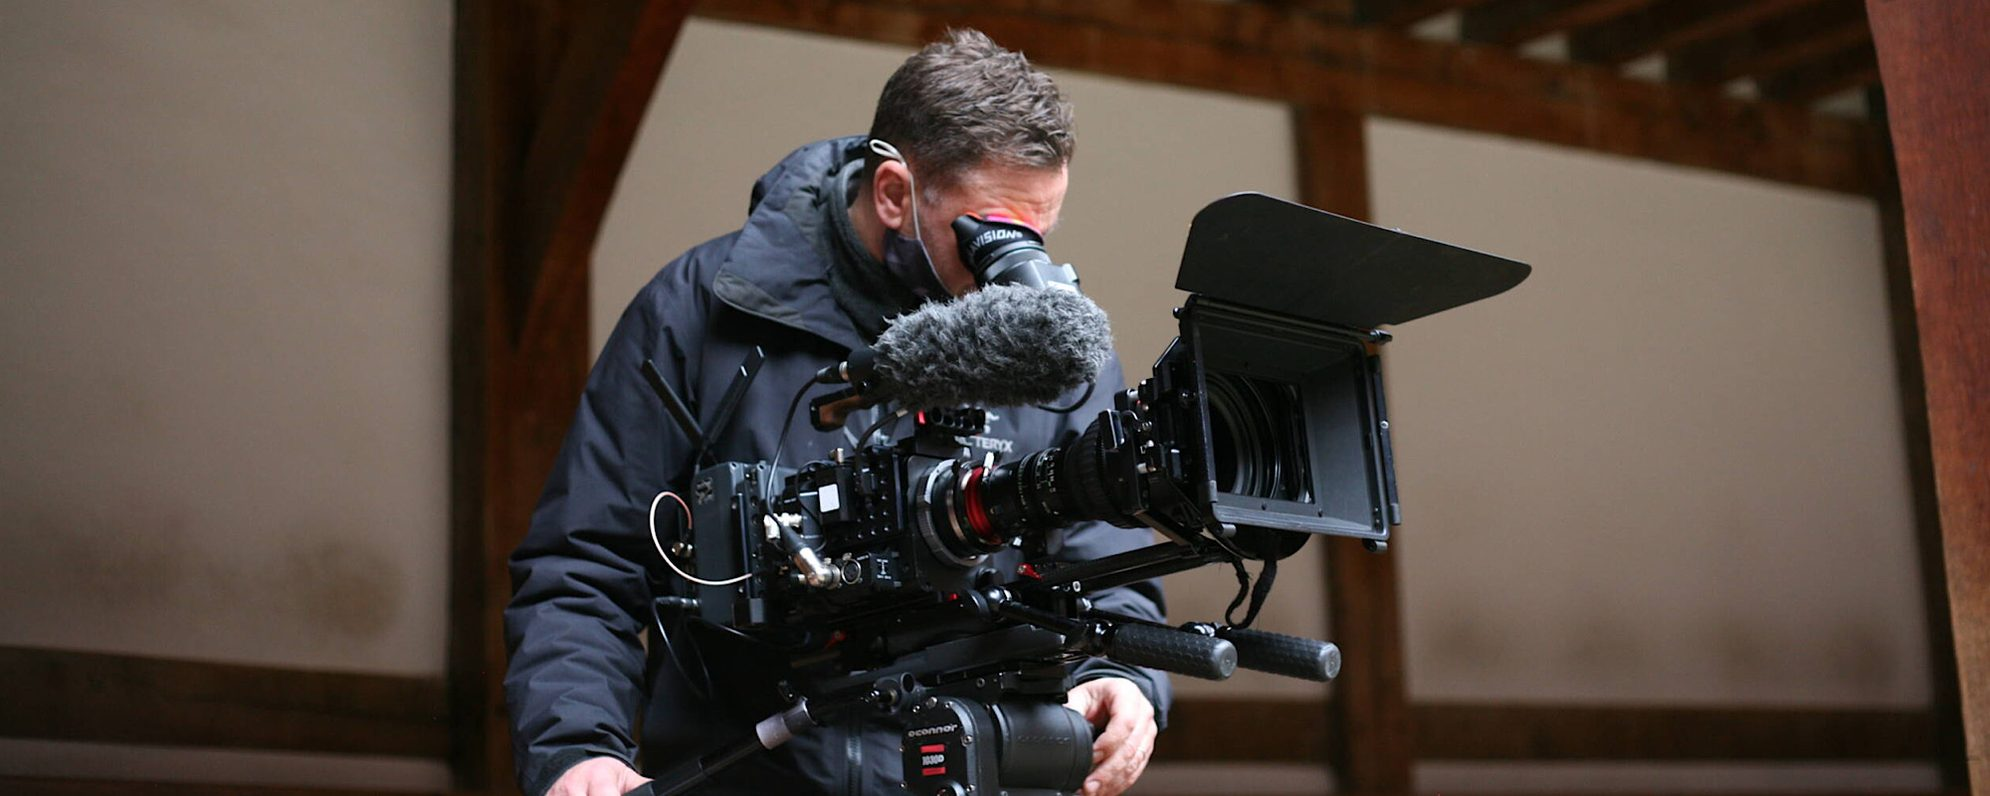 A cameraman in a black coat leans over a camera to look at what he is filming